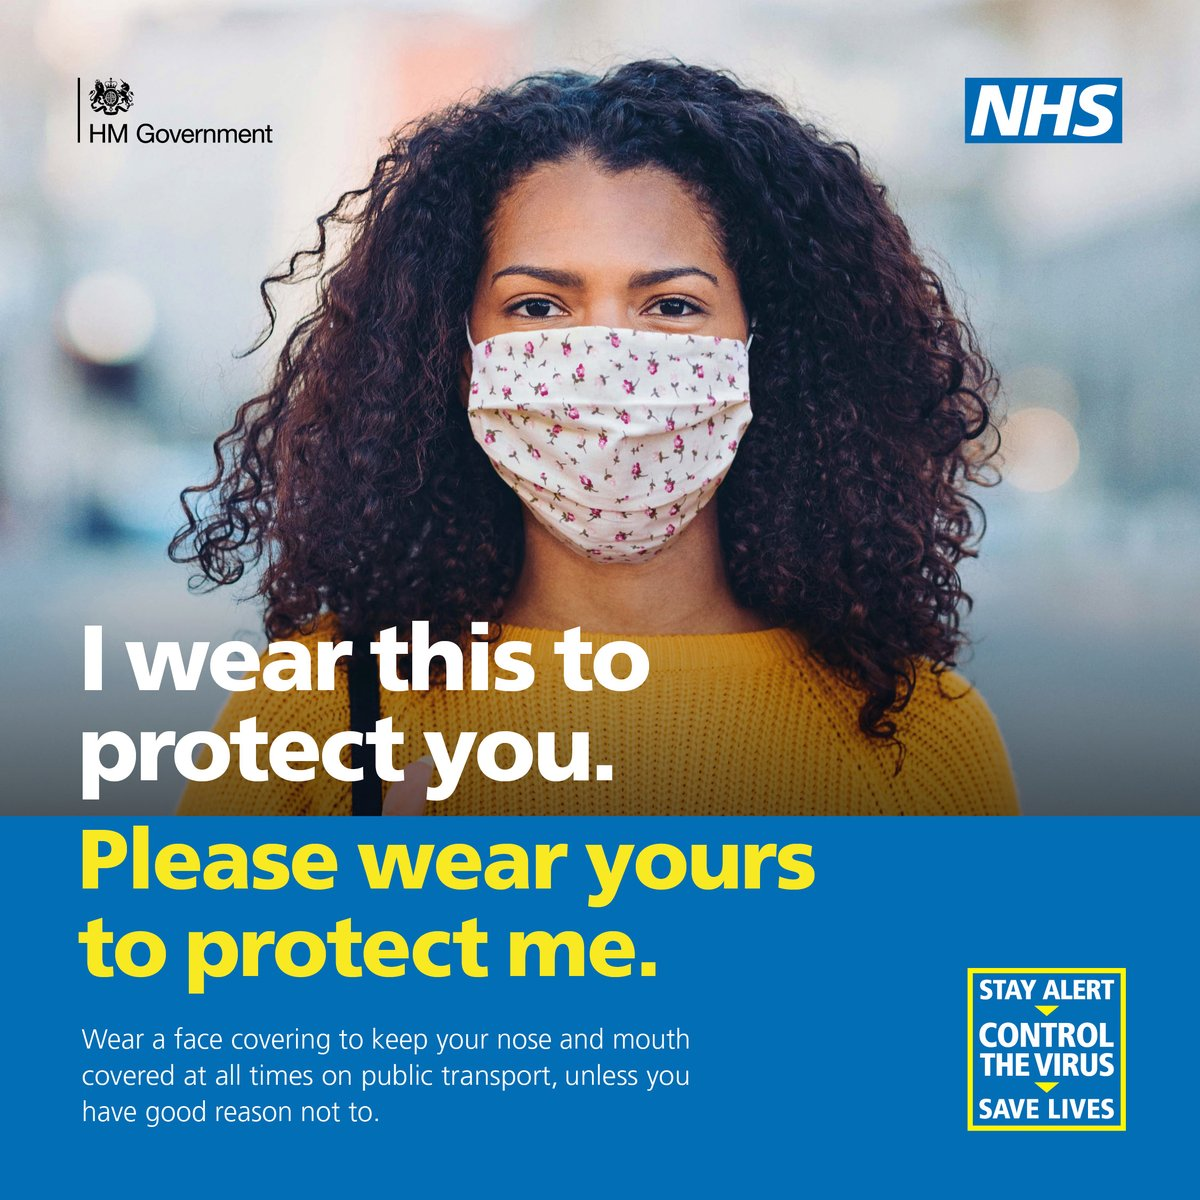 Wearing a #facecovering on public transport helps protect you and those around you from #coronavirus.  Please #StayAlert to #StaySafe this weekend. https://t.co/FcHajIxdq1